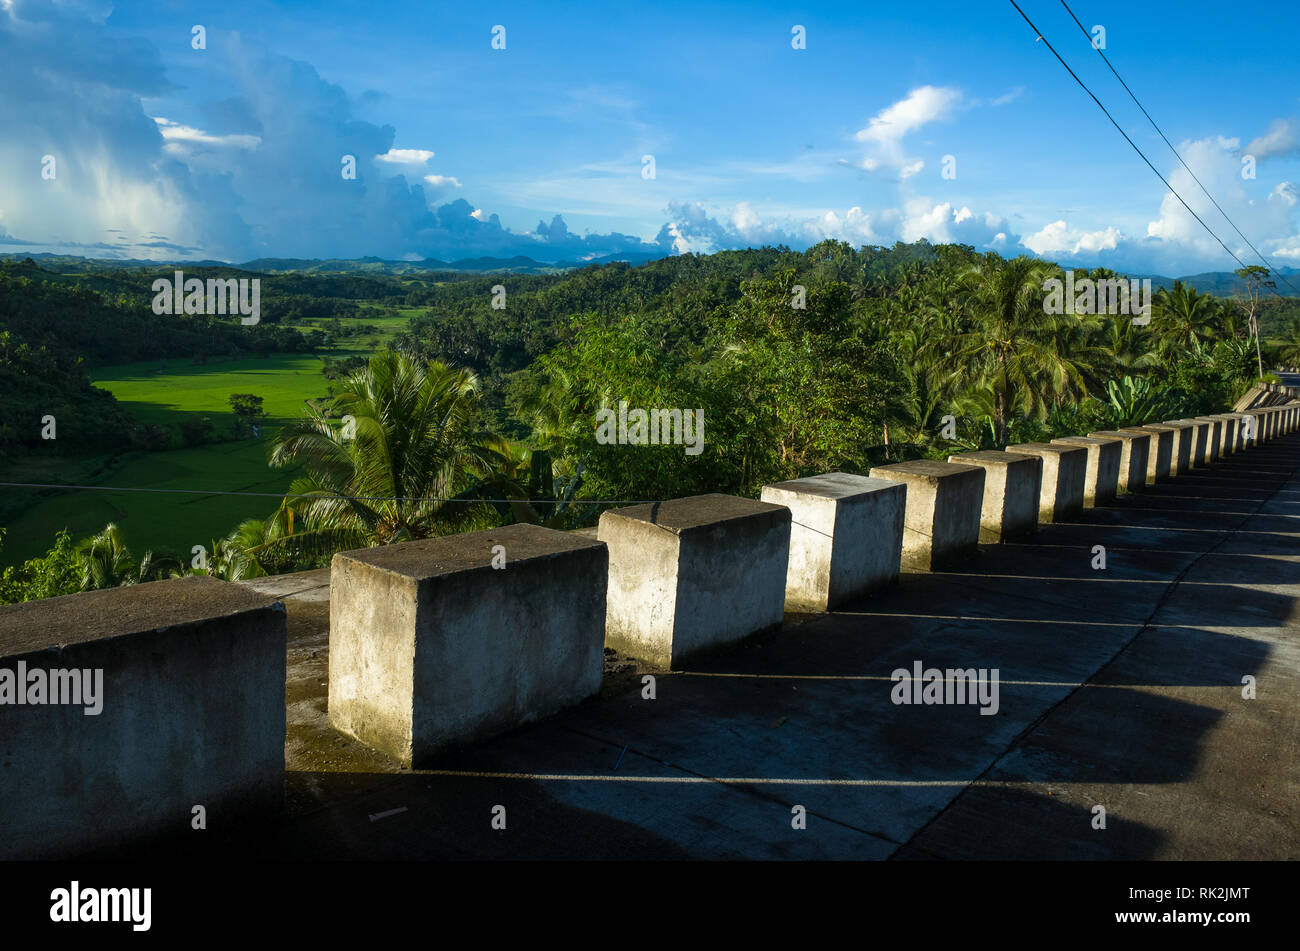 Cement Block barricade on Village Road, Overlooking Green Rice Field - Leyte, Philippines - Stock Image